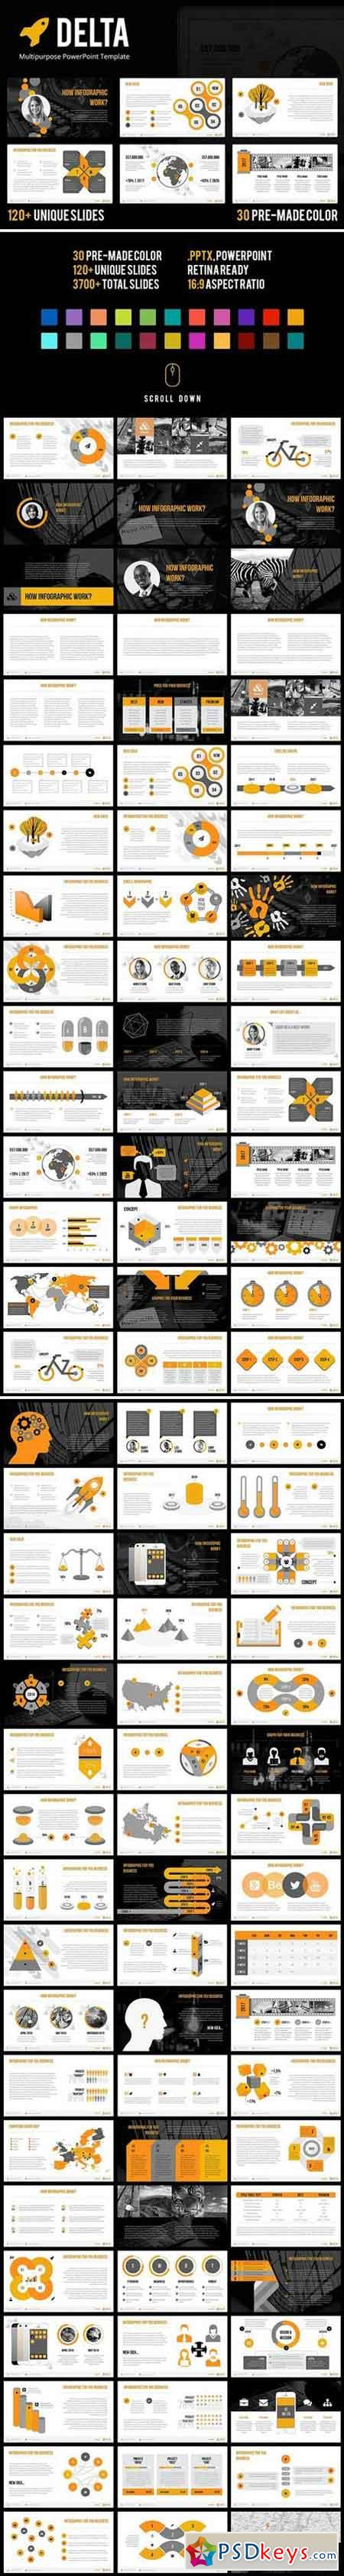 Delta - PowerPoint Template 2024857